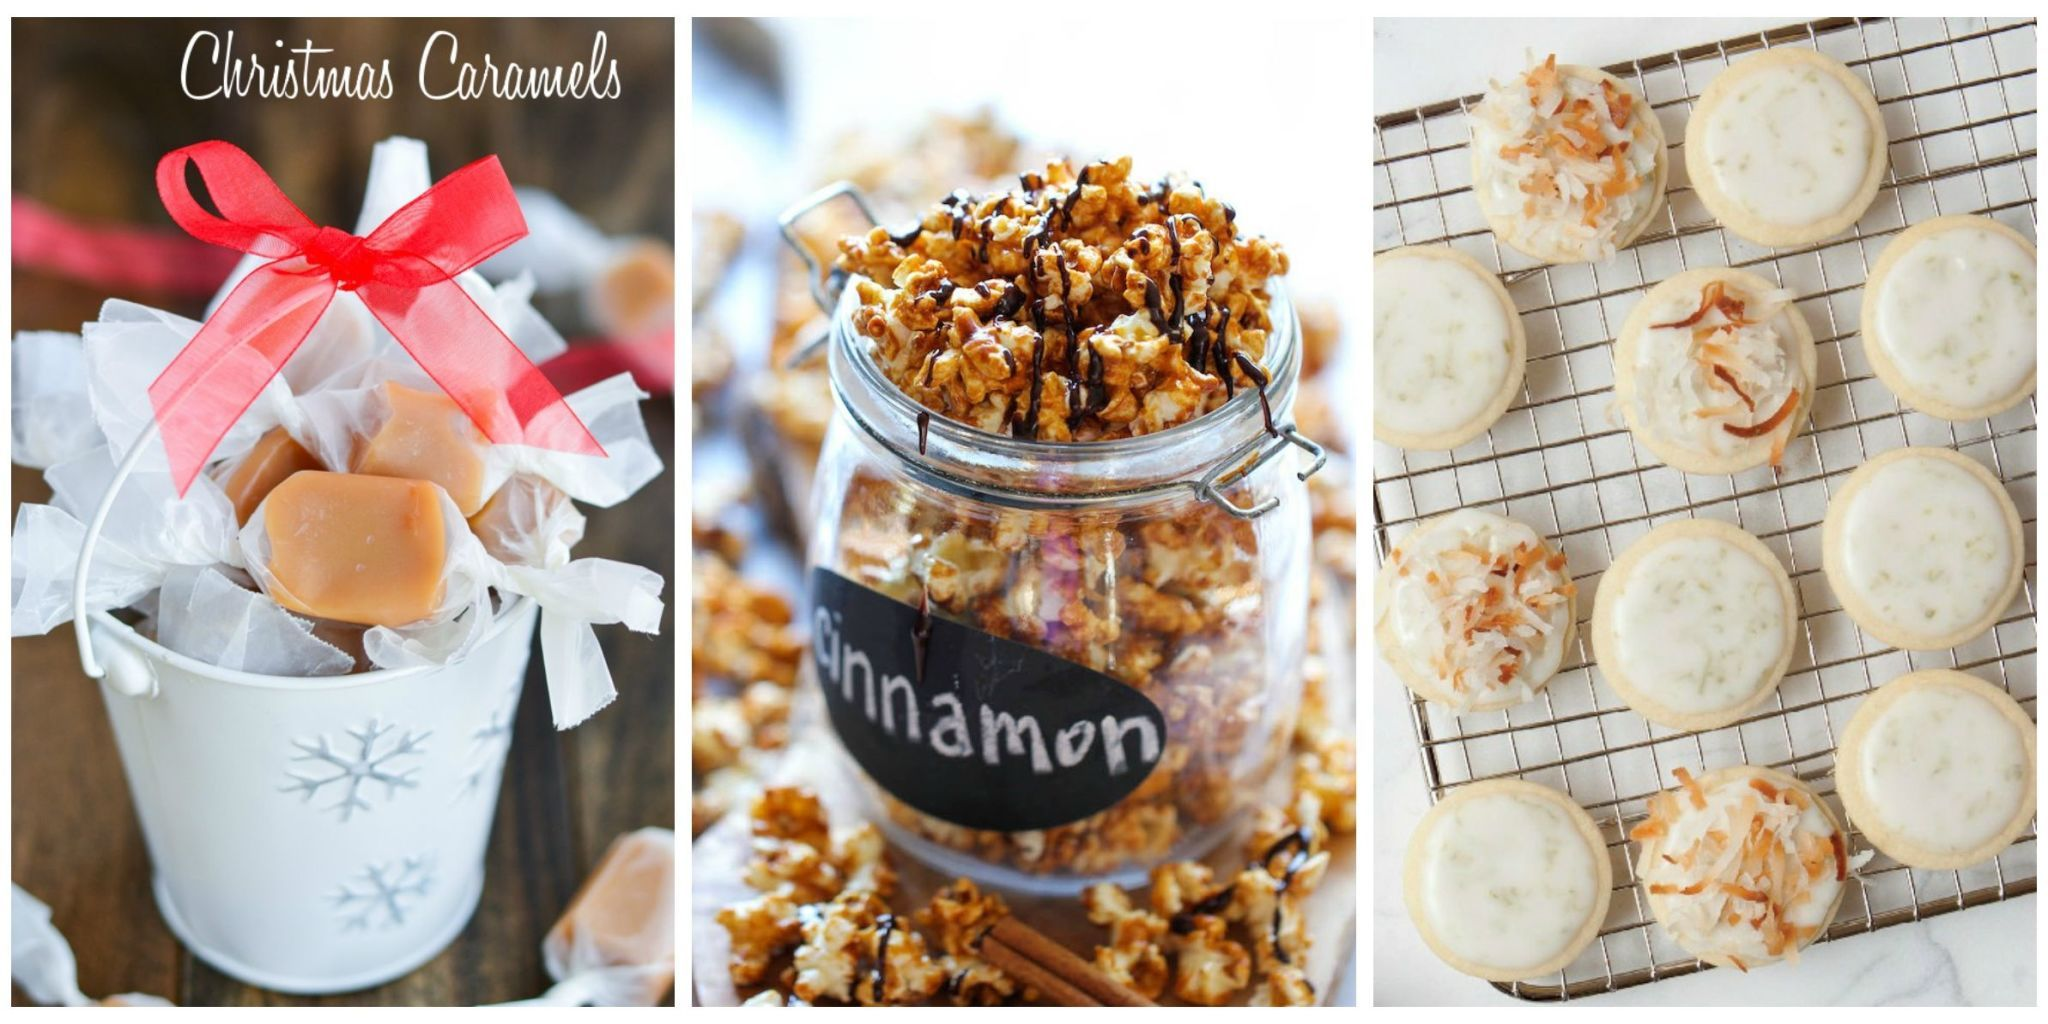 Christmas food gift ideas for coworkers